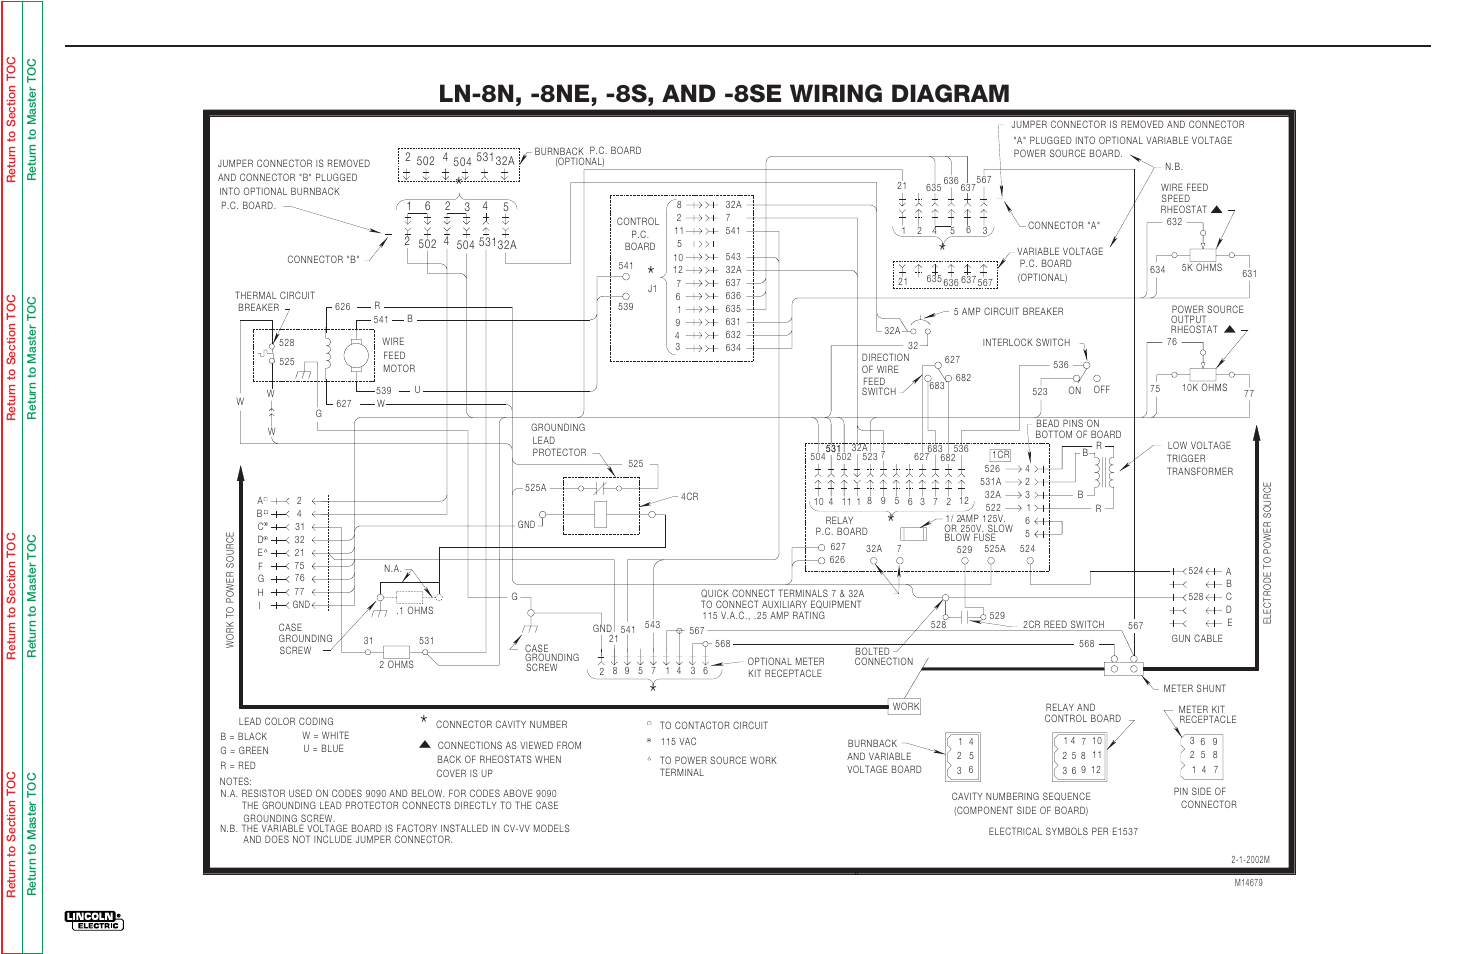 Wiring Diagram Electrical Diagrams Ln 8n 8ne 8s And